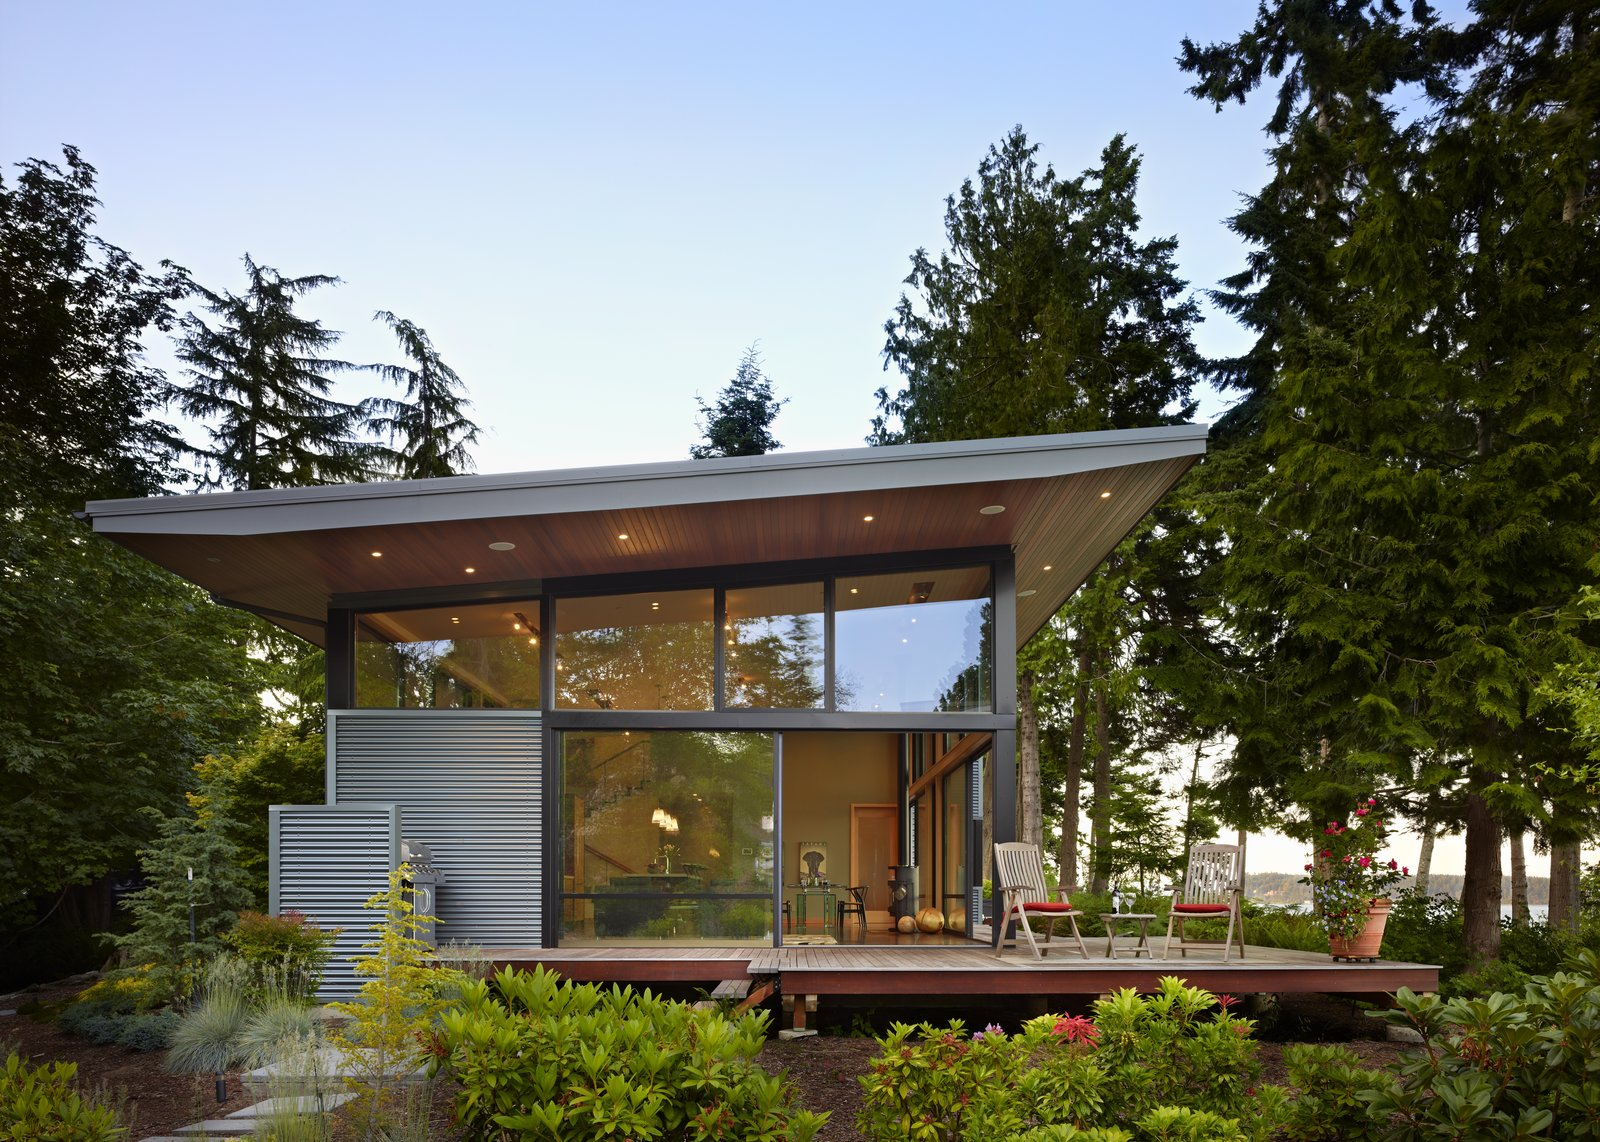 Exterior, Metal Roof Material, House Building Type, Shed RoofLine, Metal Siding Material, and Glass Siding Material South side of house, with 6-ft roof overhangs and large sliding glass panels  Photos from Port Ludlow House